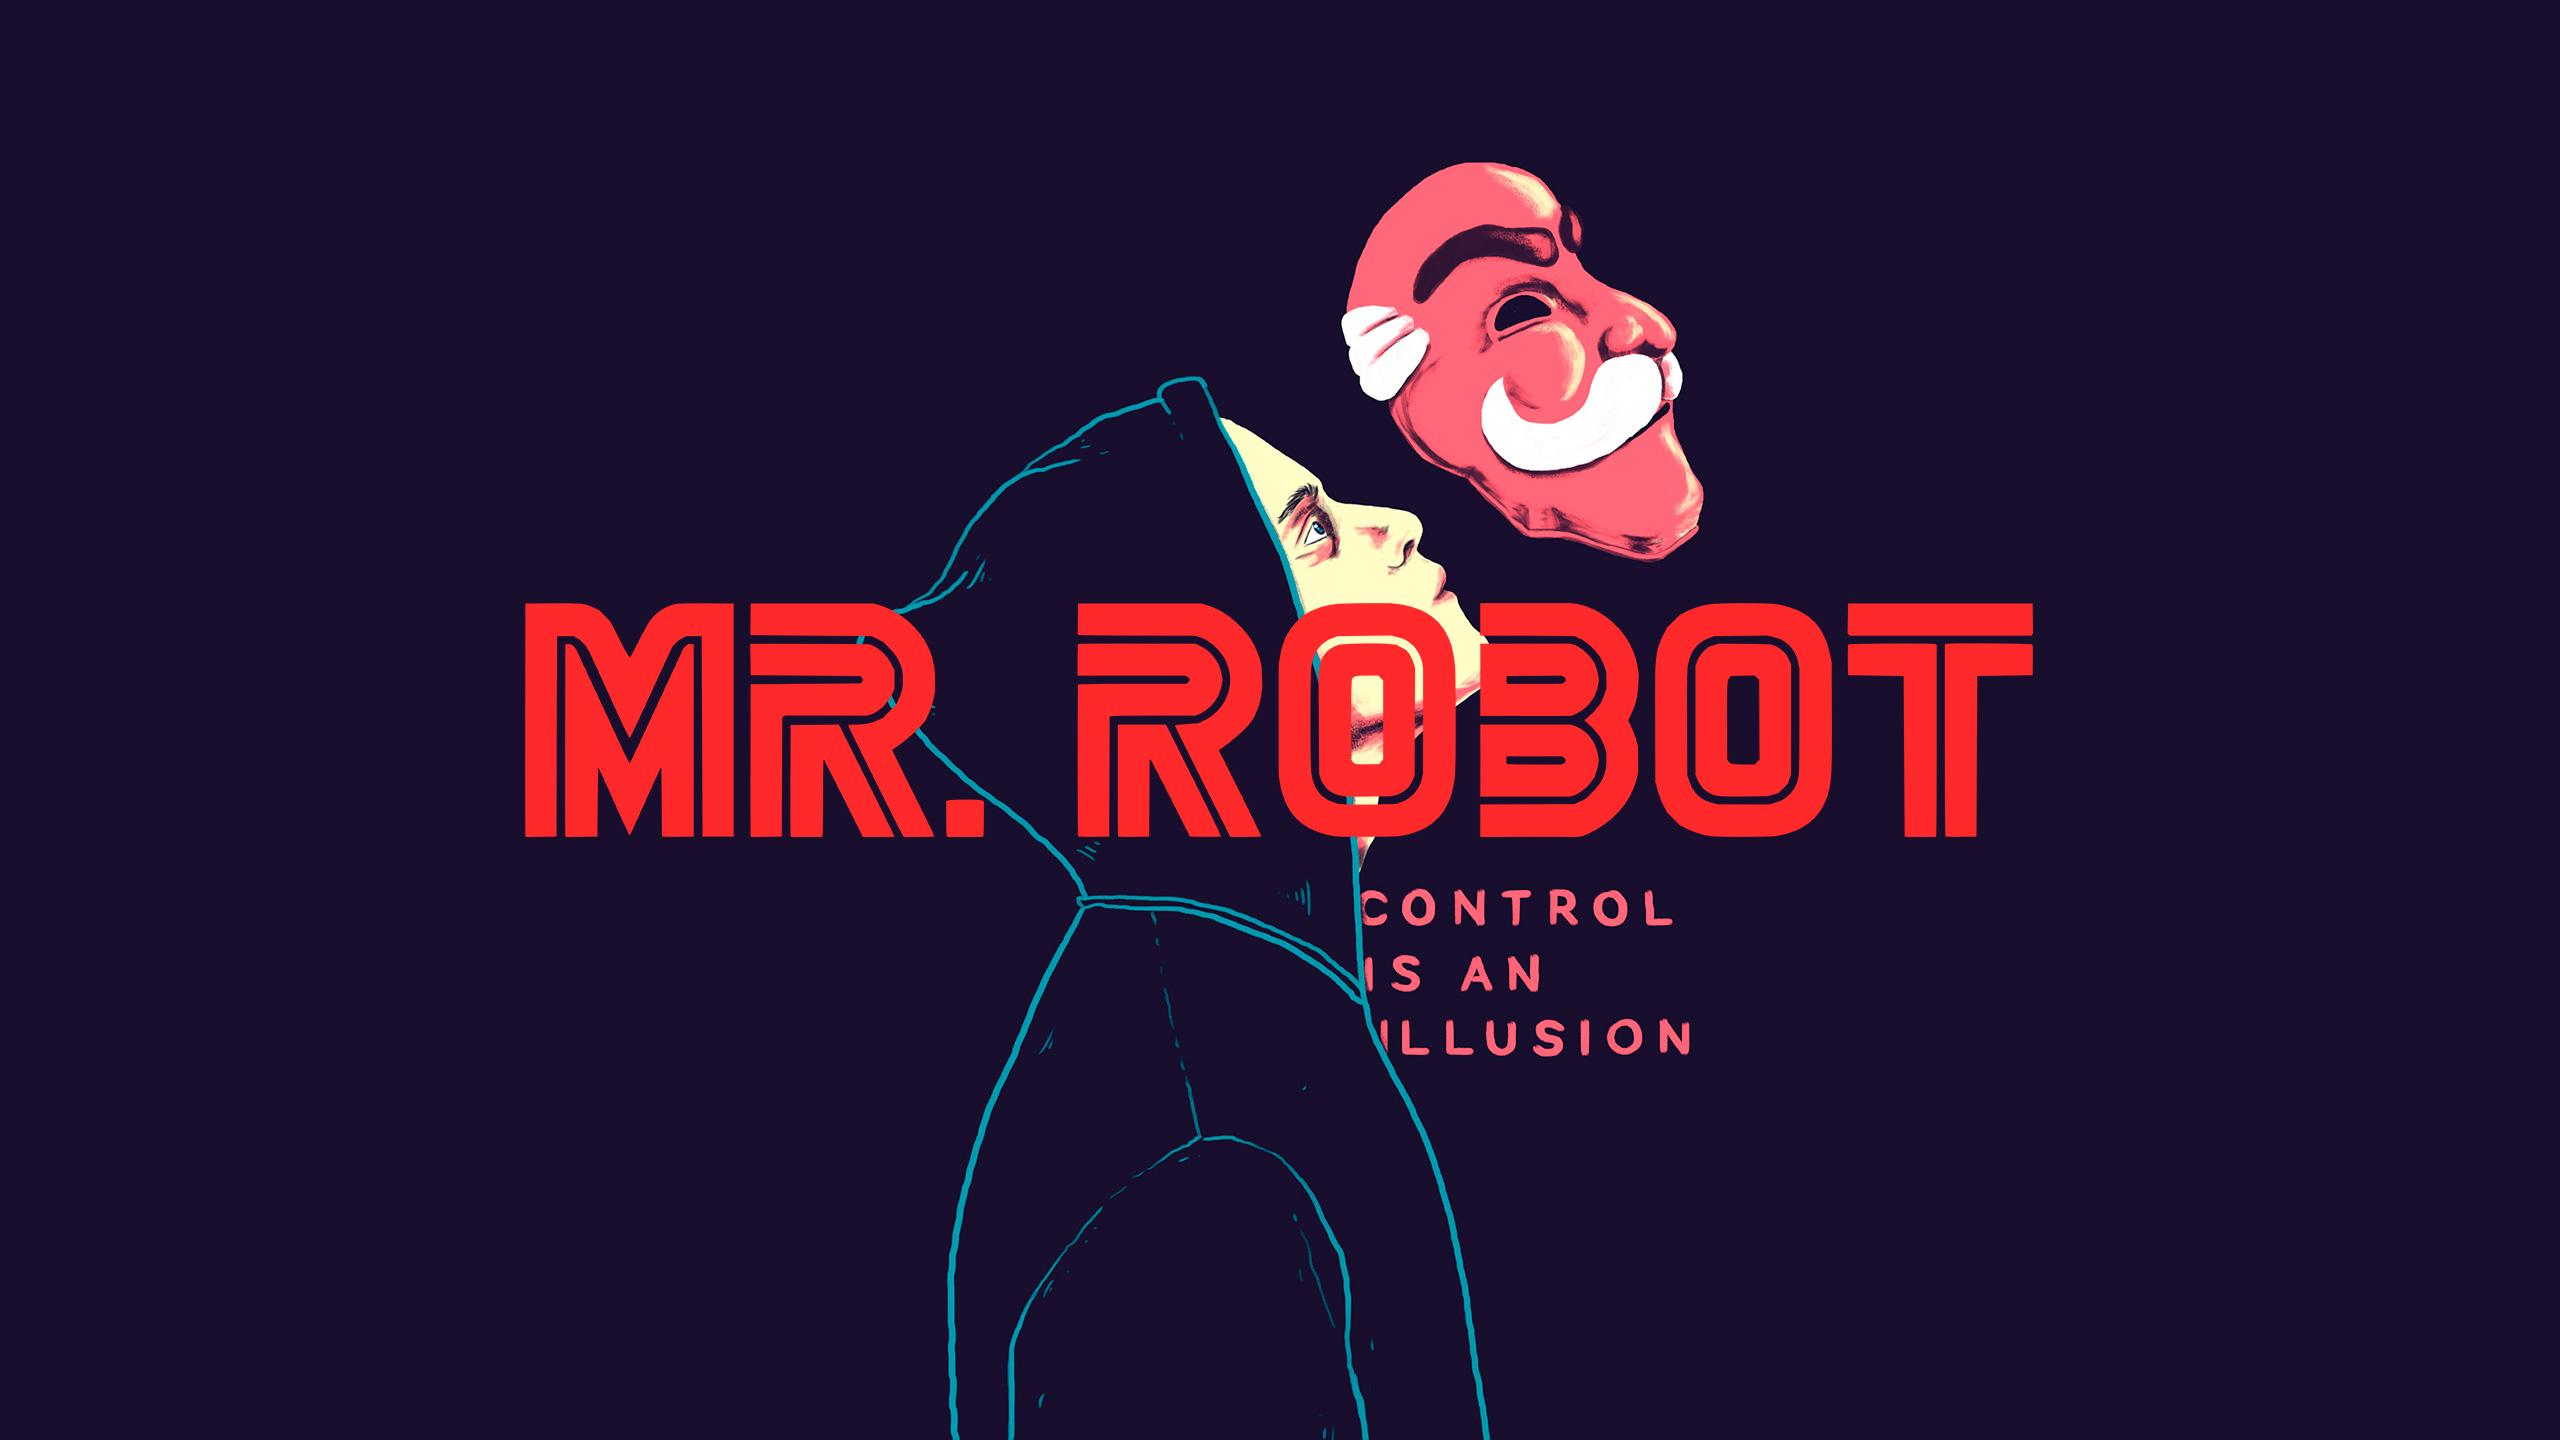 Mr. Robot Wallpapers Control Is An Illusion : wallpapers